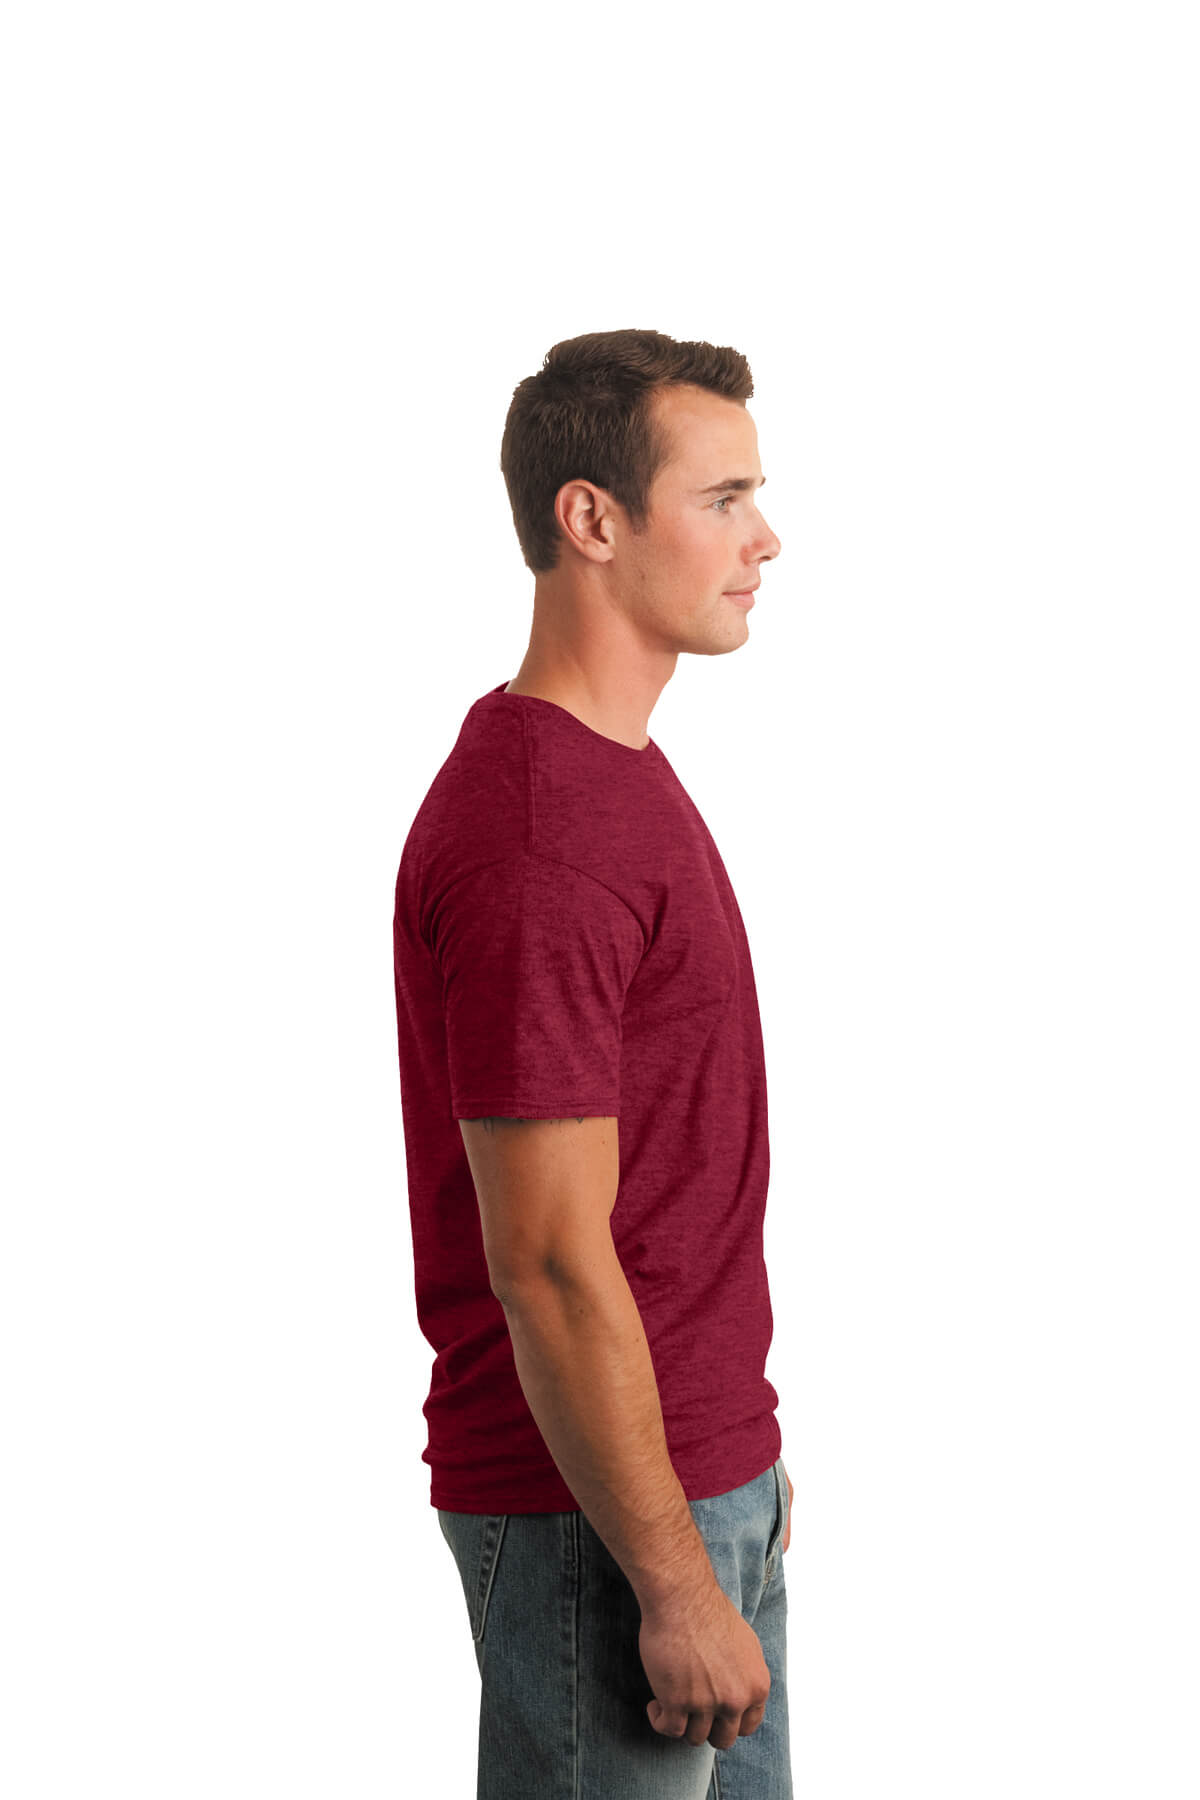 Cherry Red T-Shirt Model Right